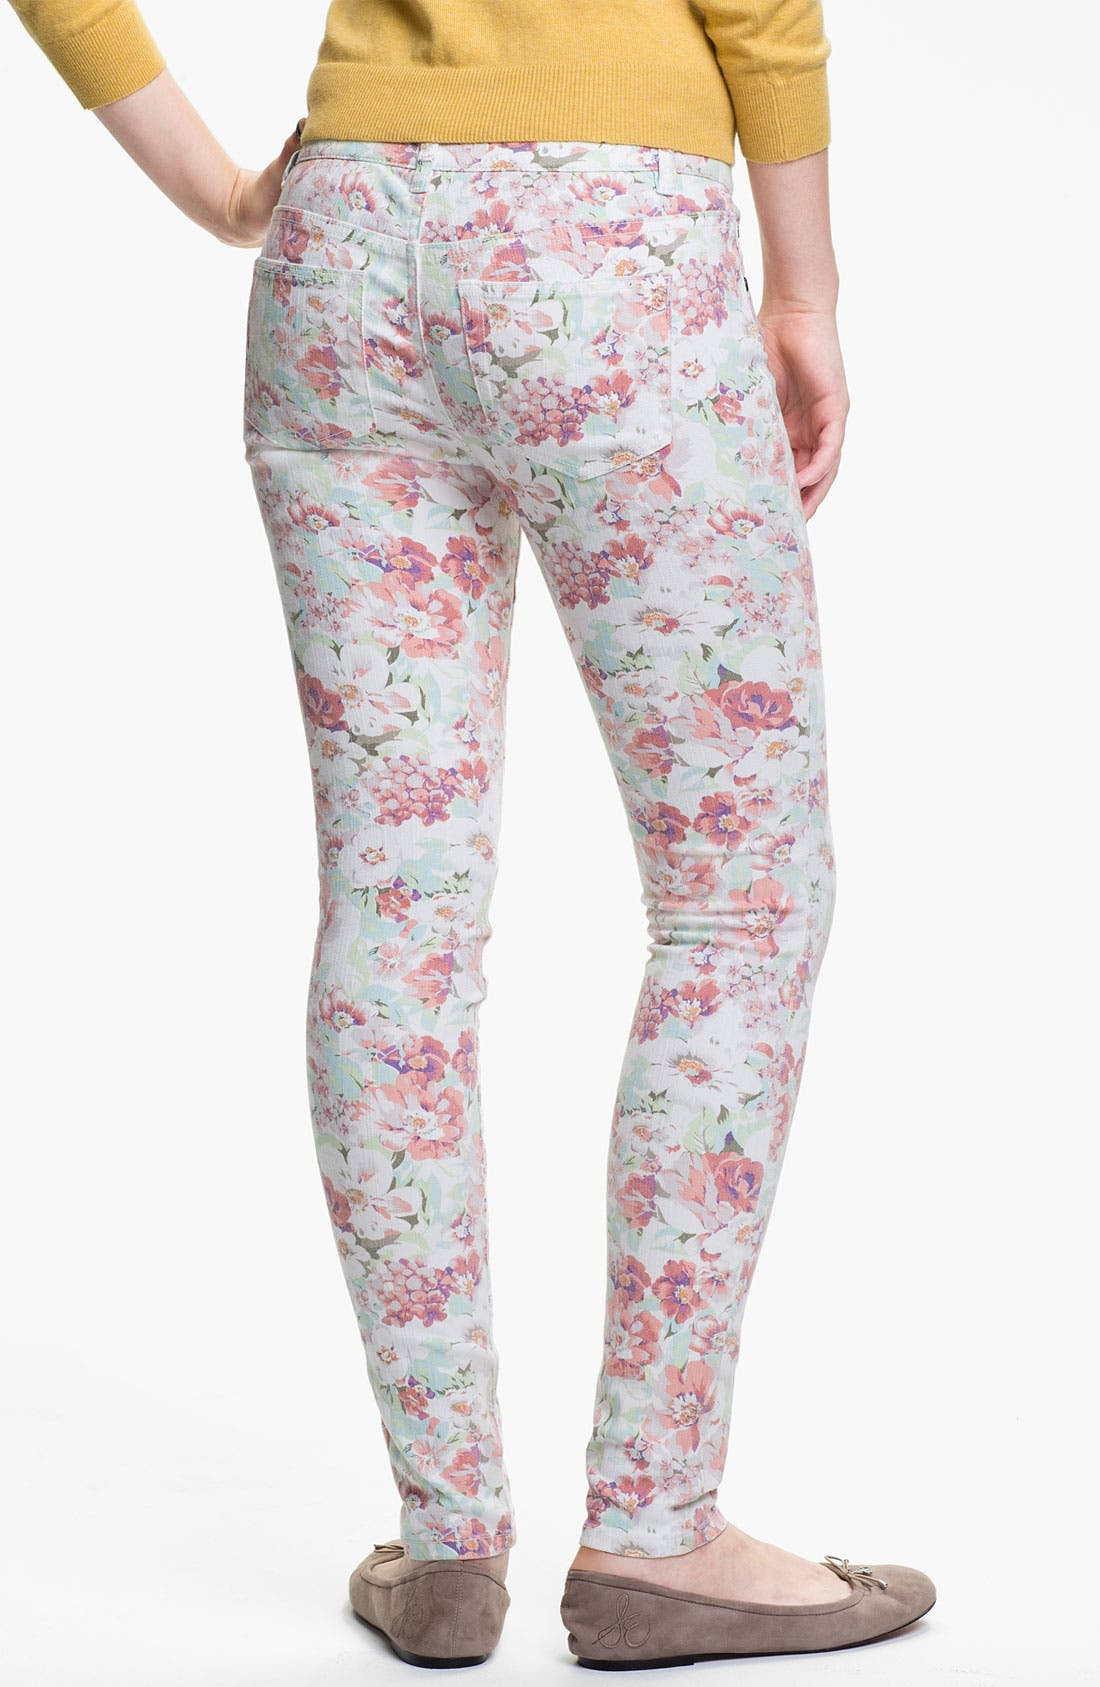 Main Image - Fire Floral Print Skinny Jeans (Juniors)